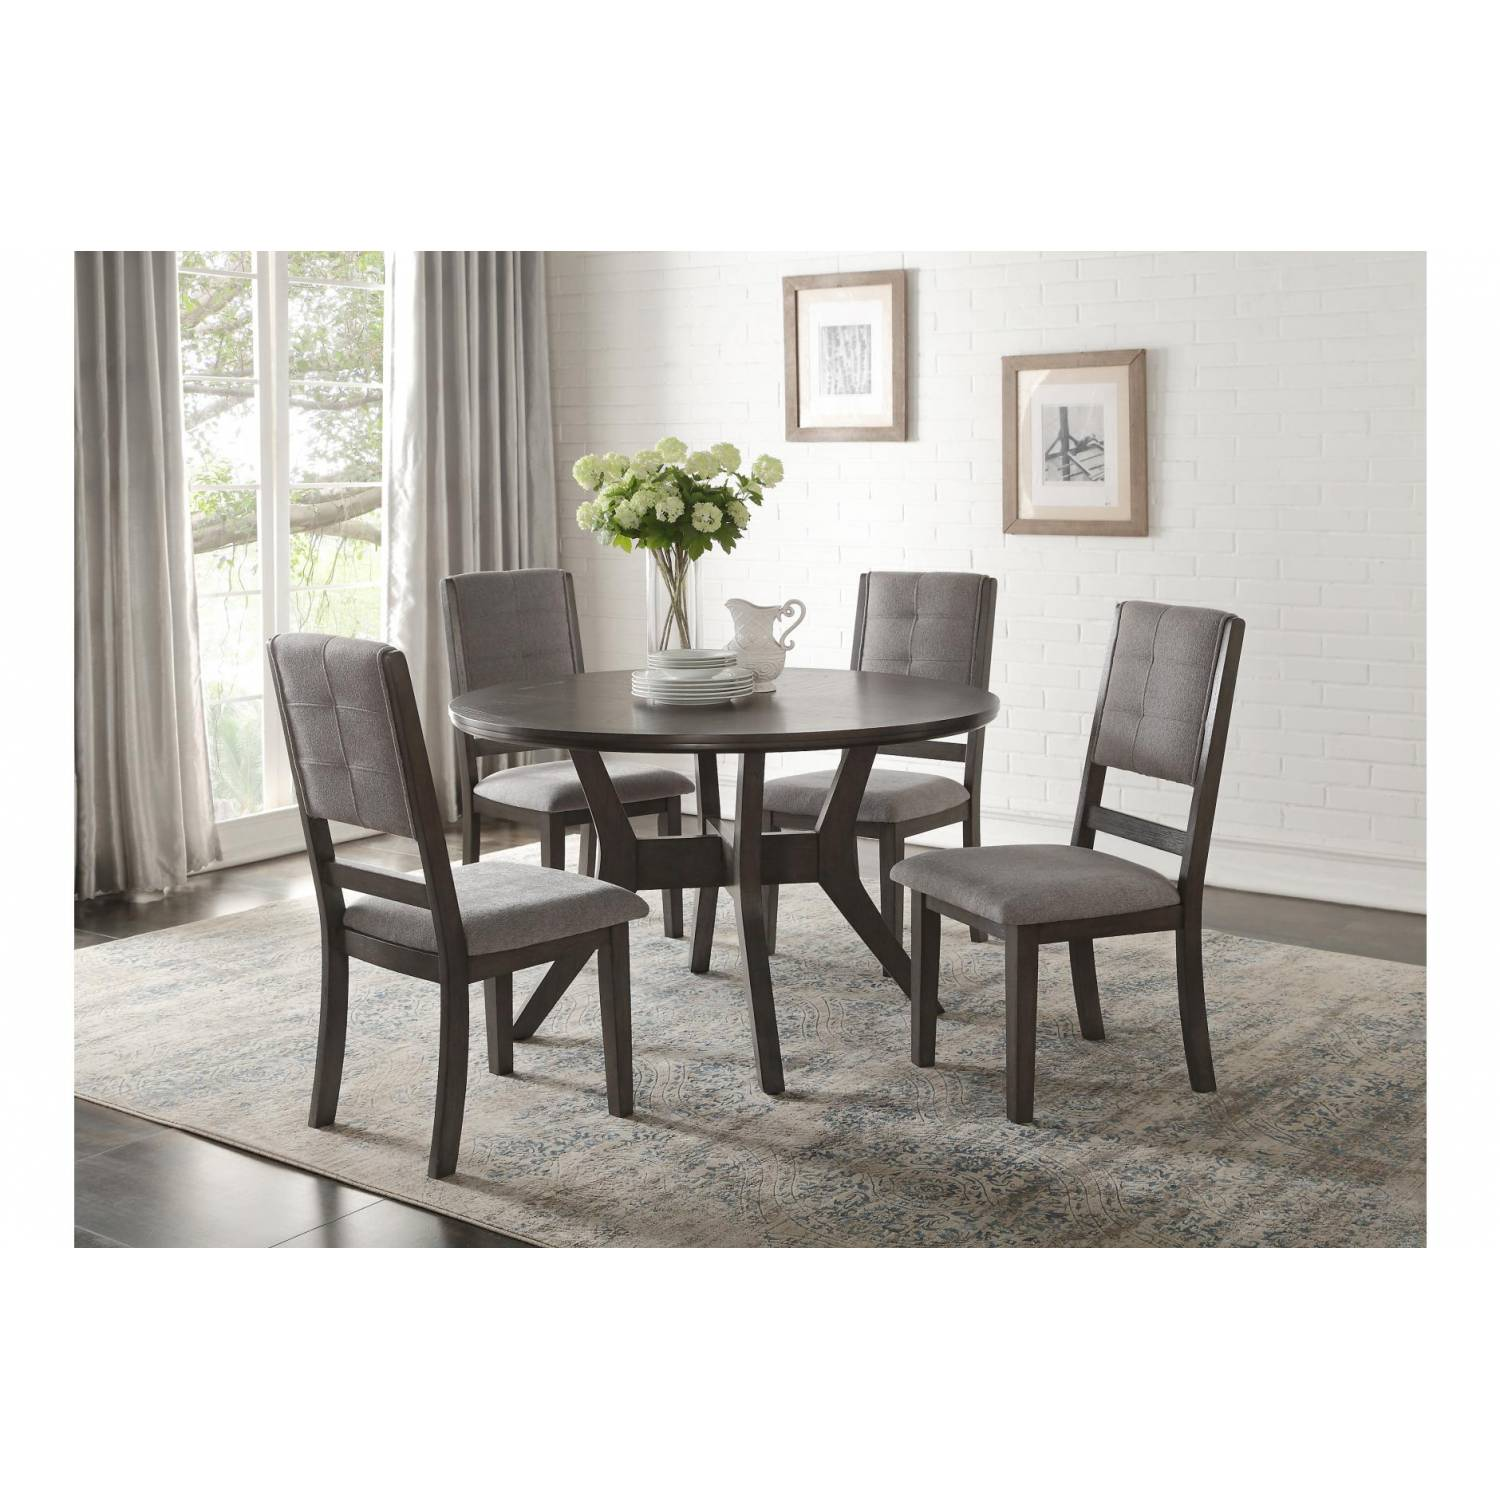 Nisky 5PC SETS Round Dining Table + 4 Side Chairs